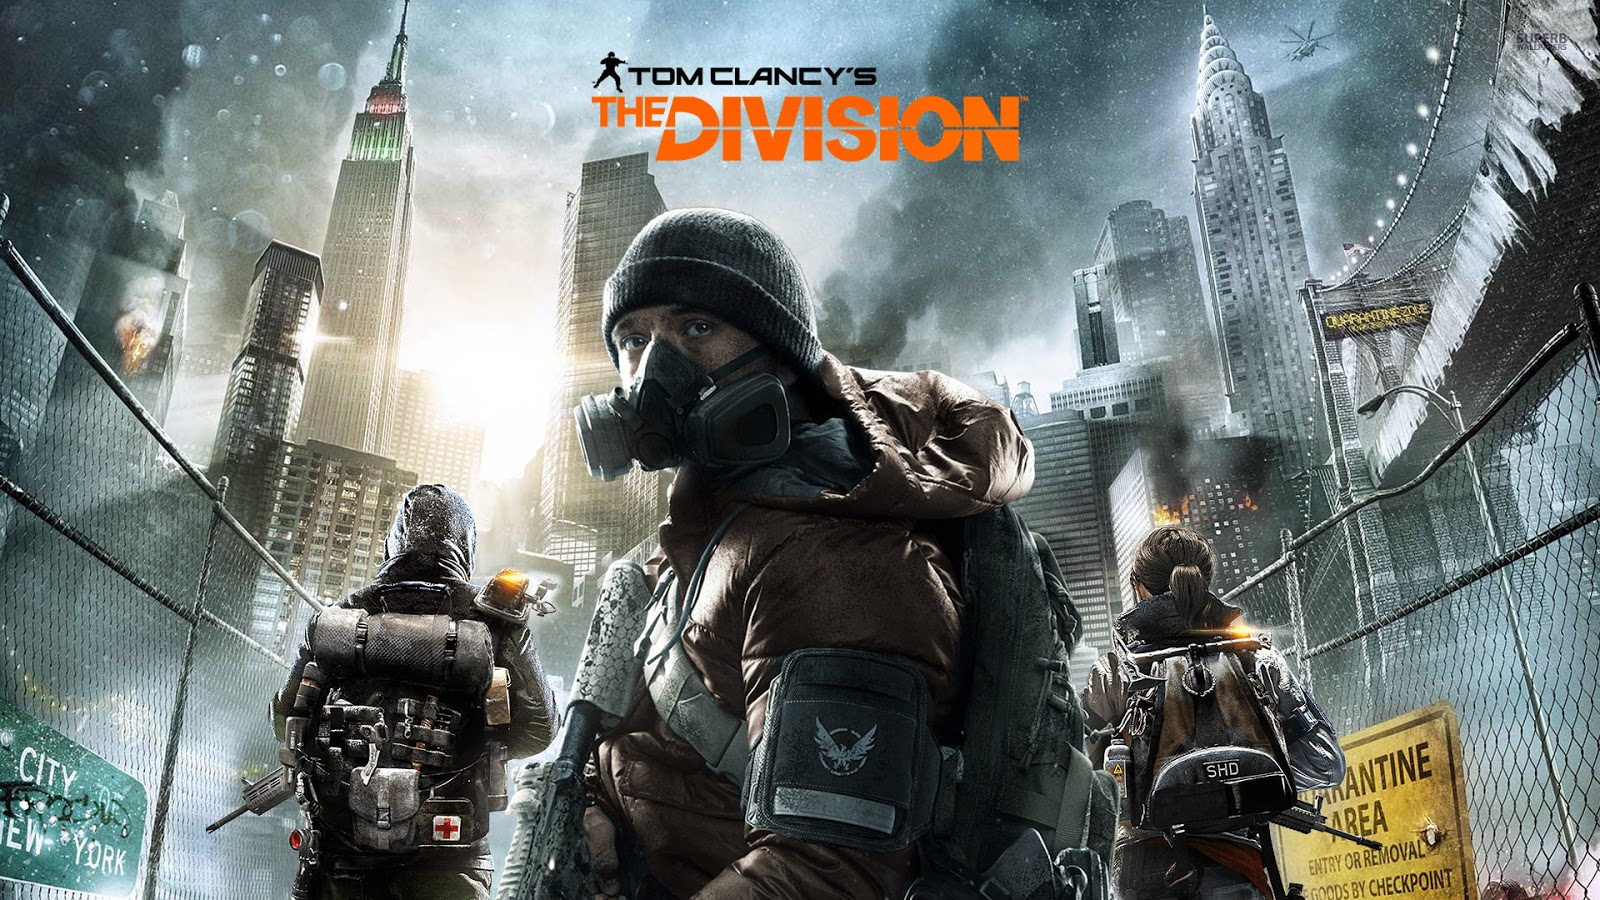 Tom Clancy's The Division, release date TBA 2015